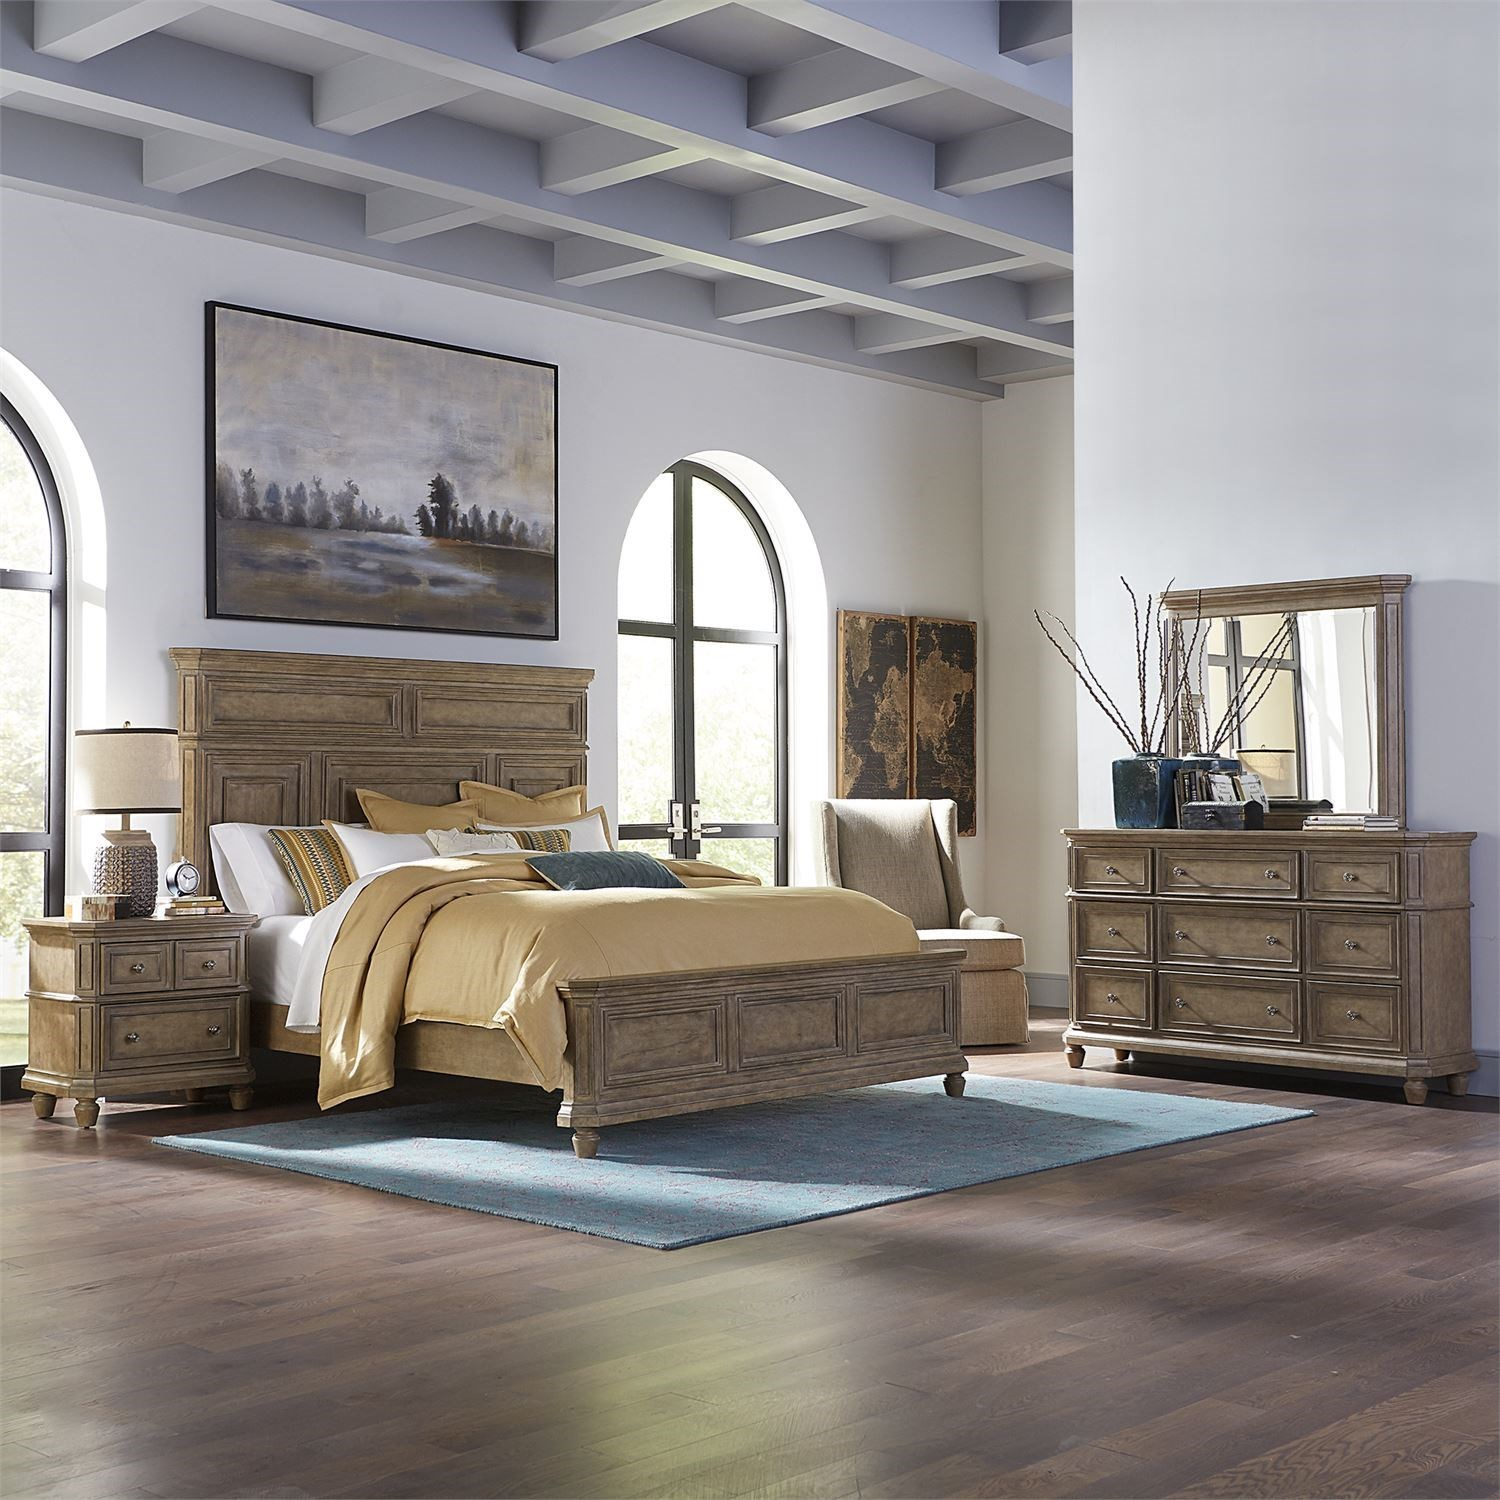 The Laurels King Bedroom Group by Libby at Walker's Furniture